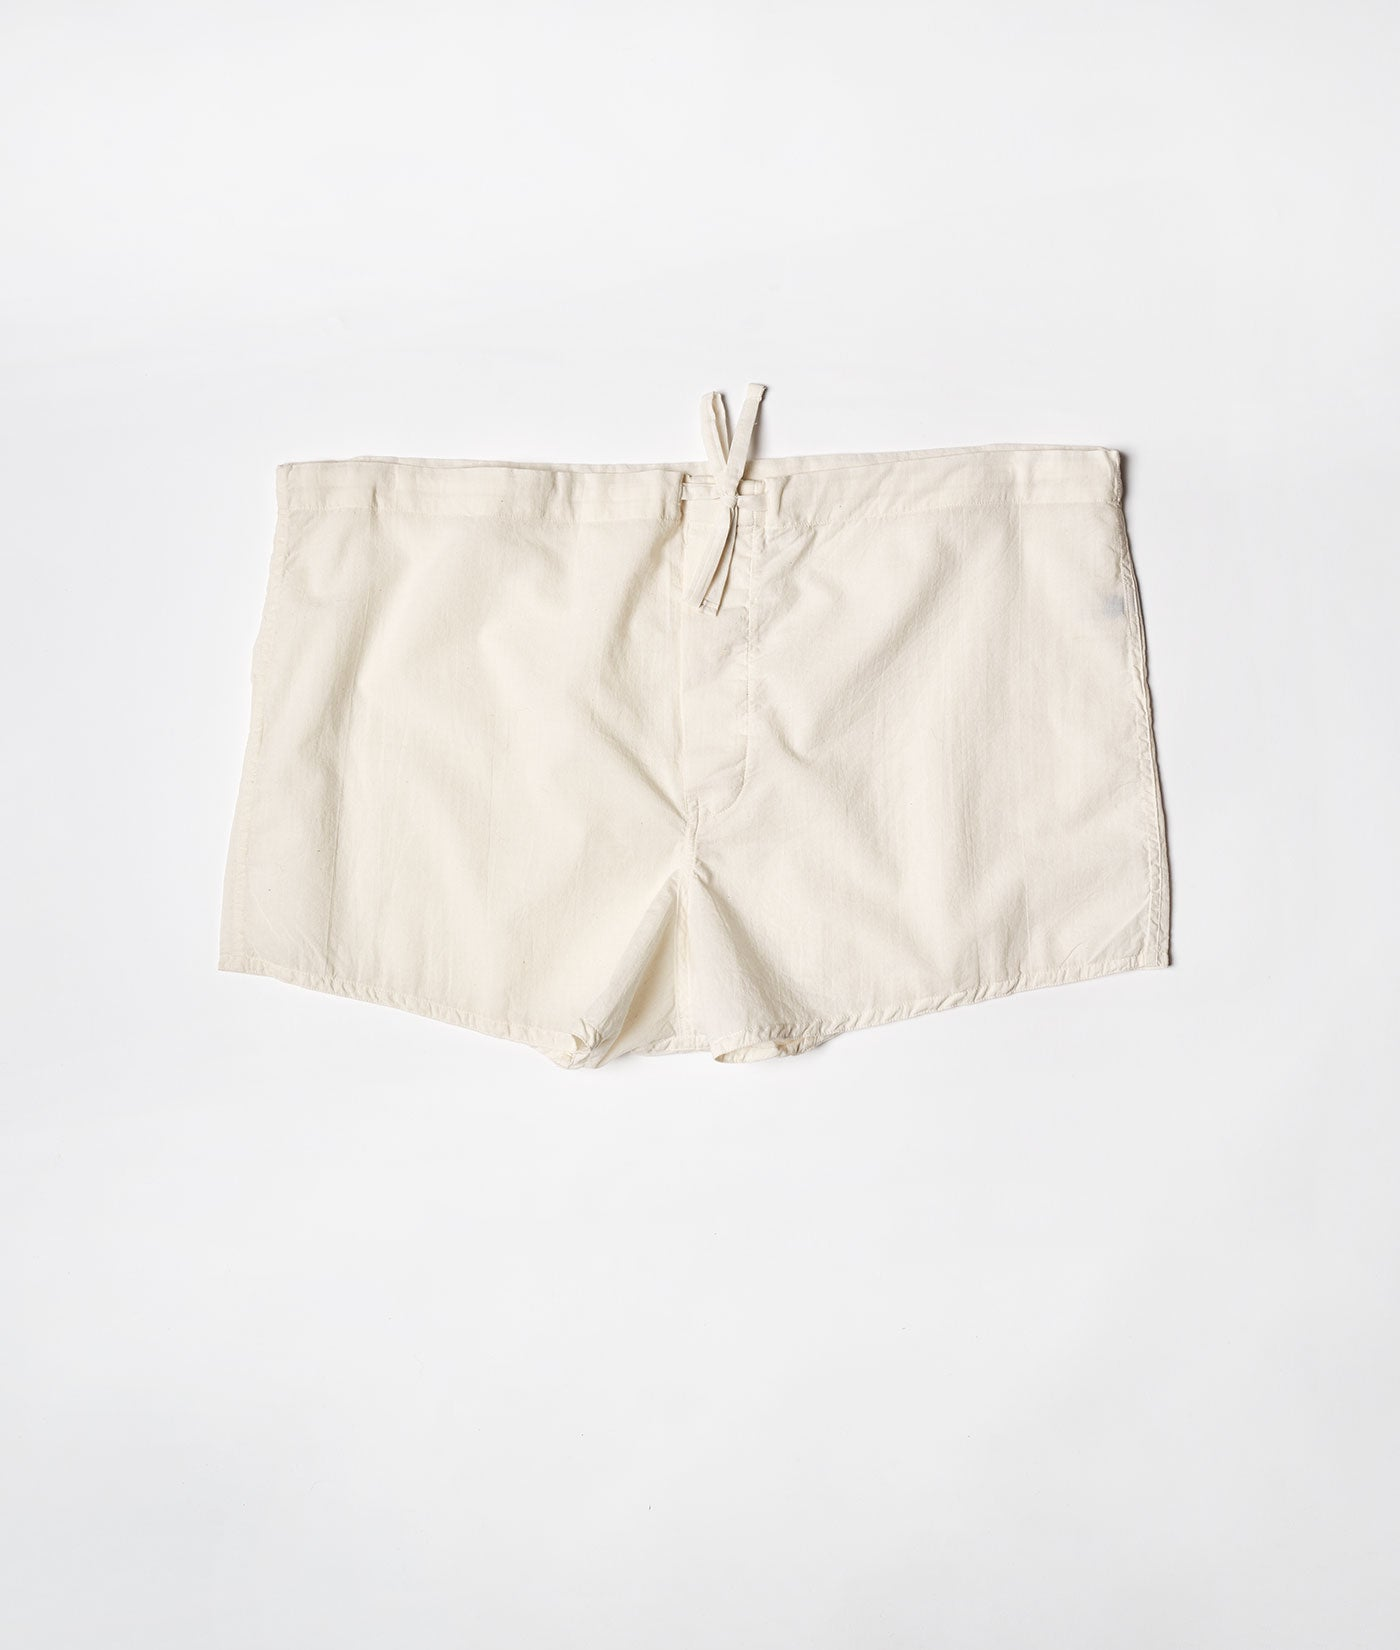 Industry of All Nations Organic Woven Cotton Boxers